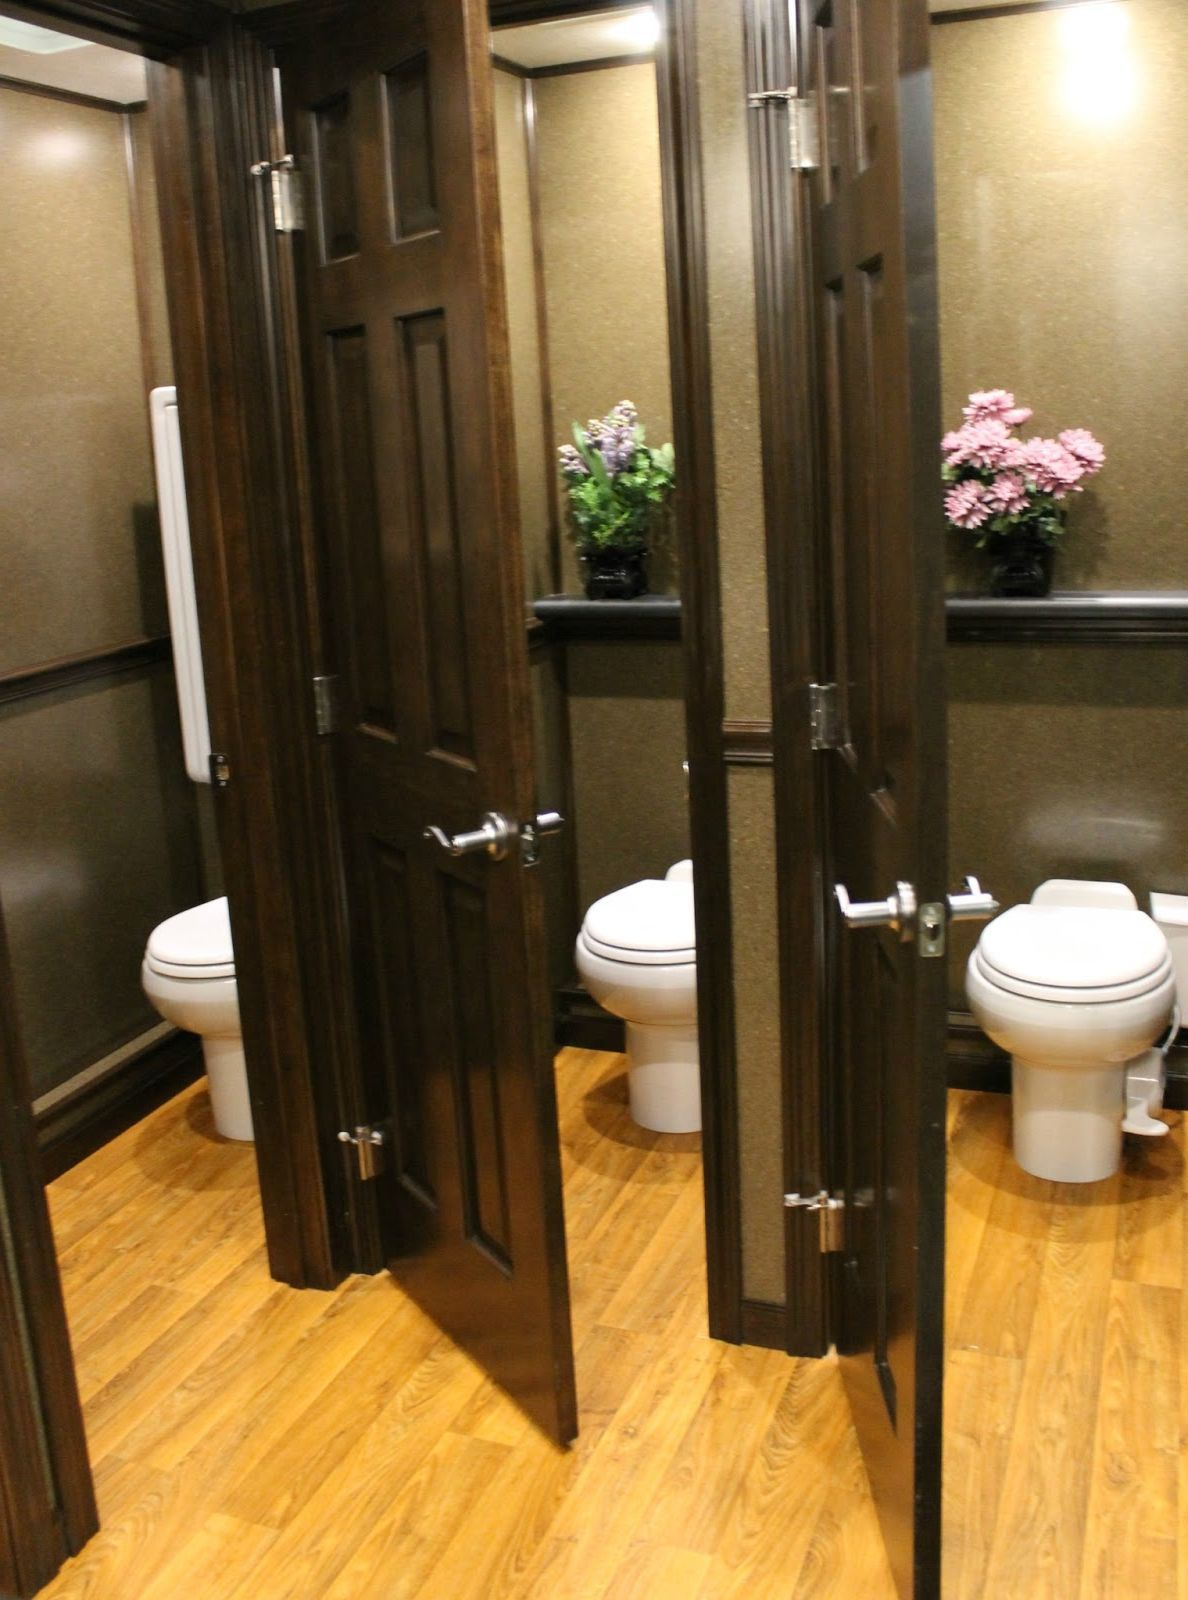 Hotel public restroom design google search event for Hotel design 77